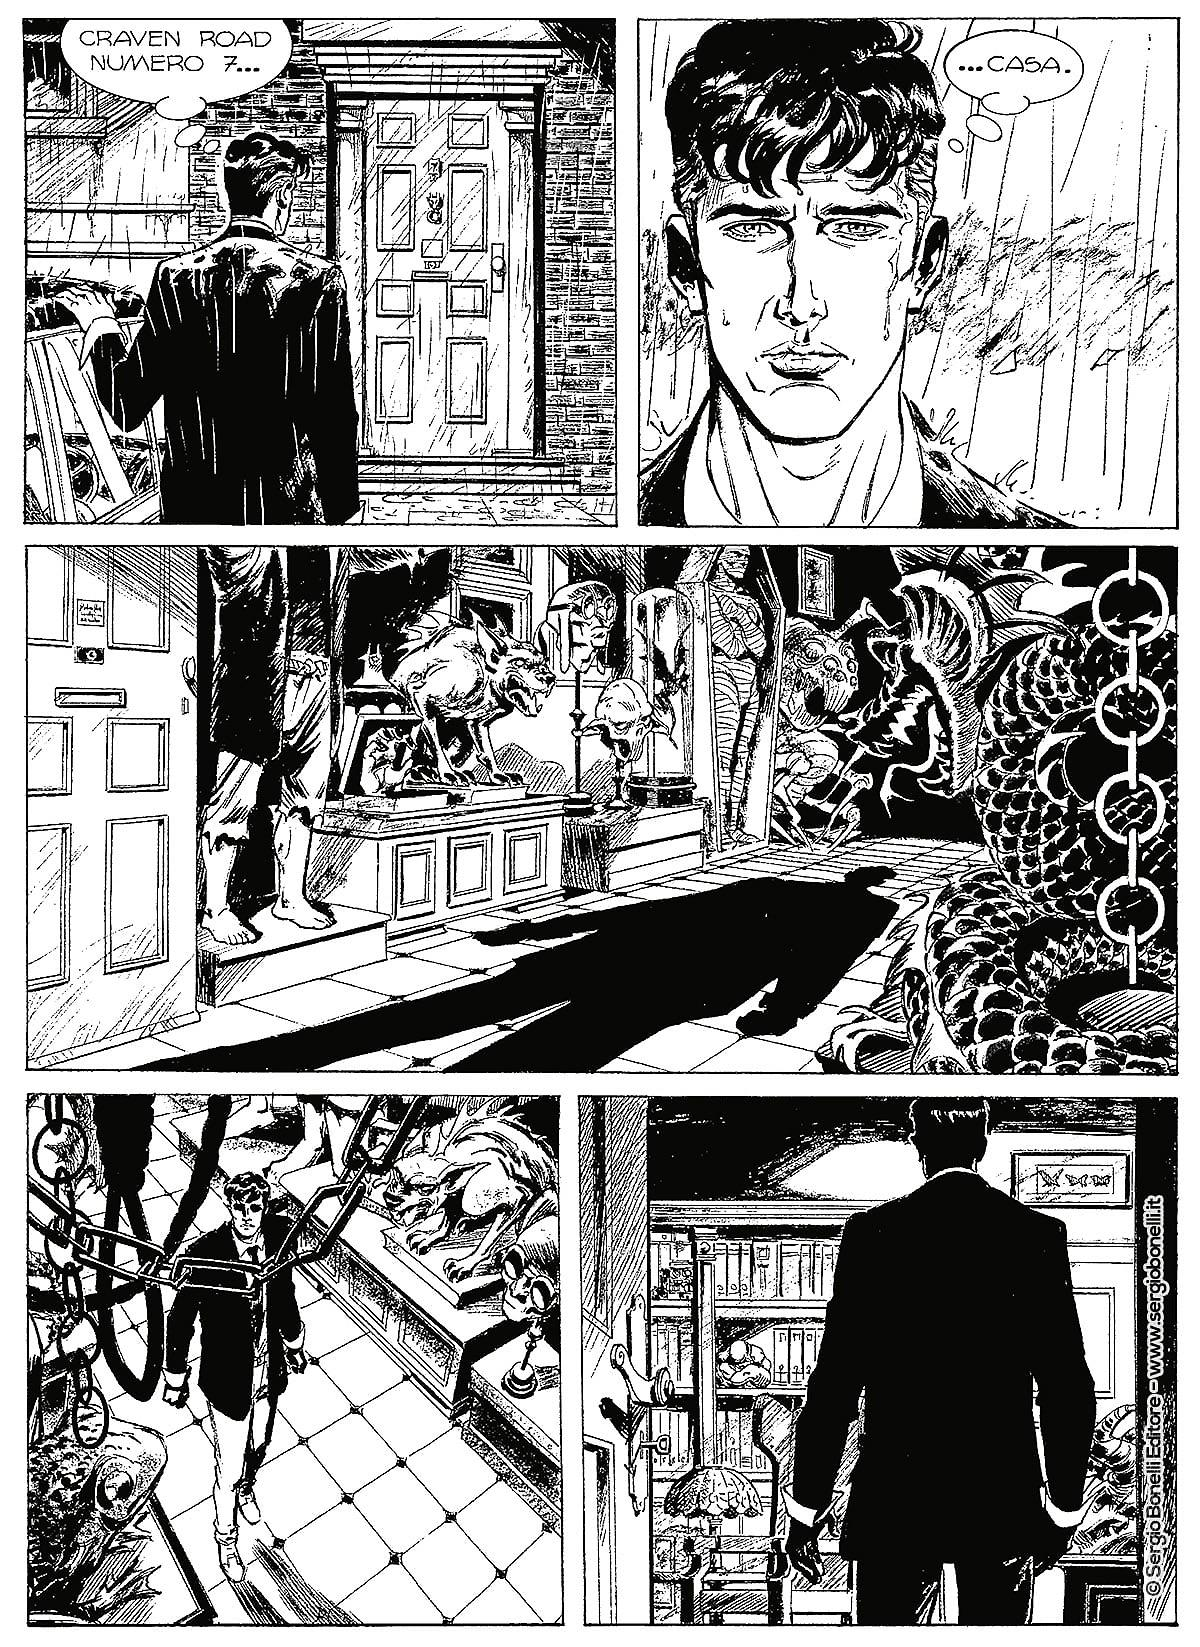 dylan dog pianeta morti 5